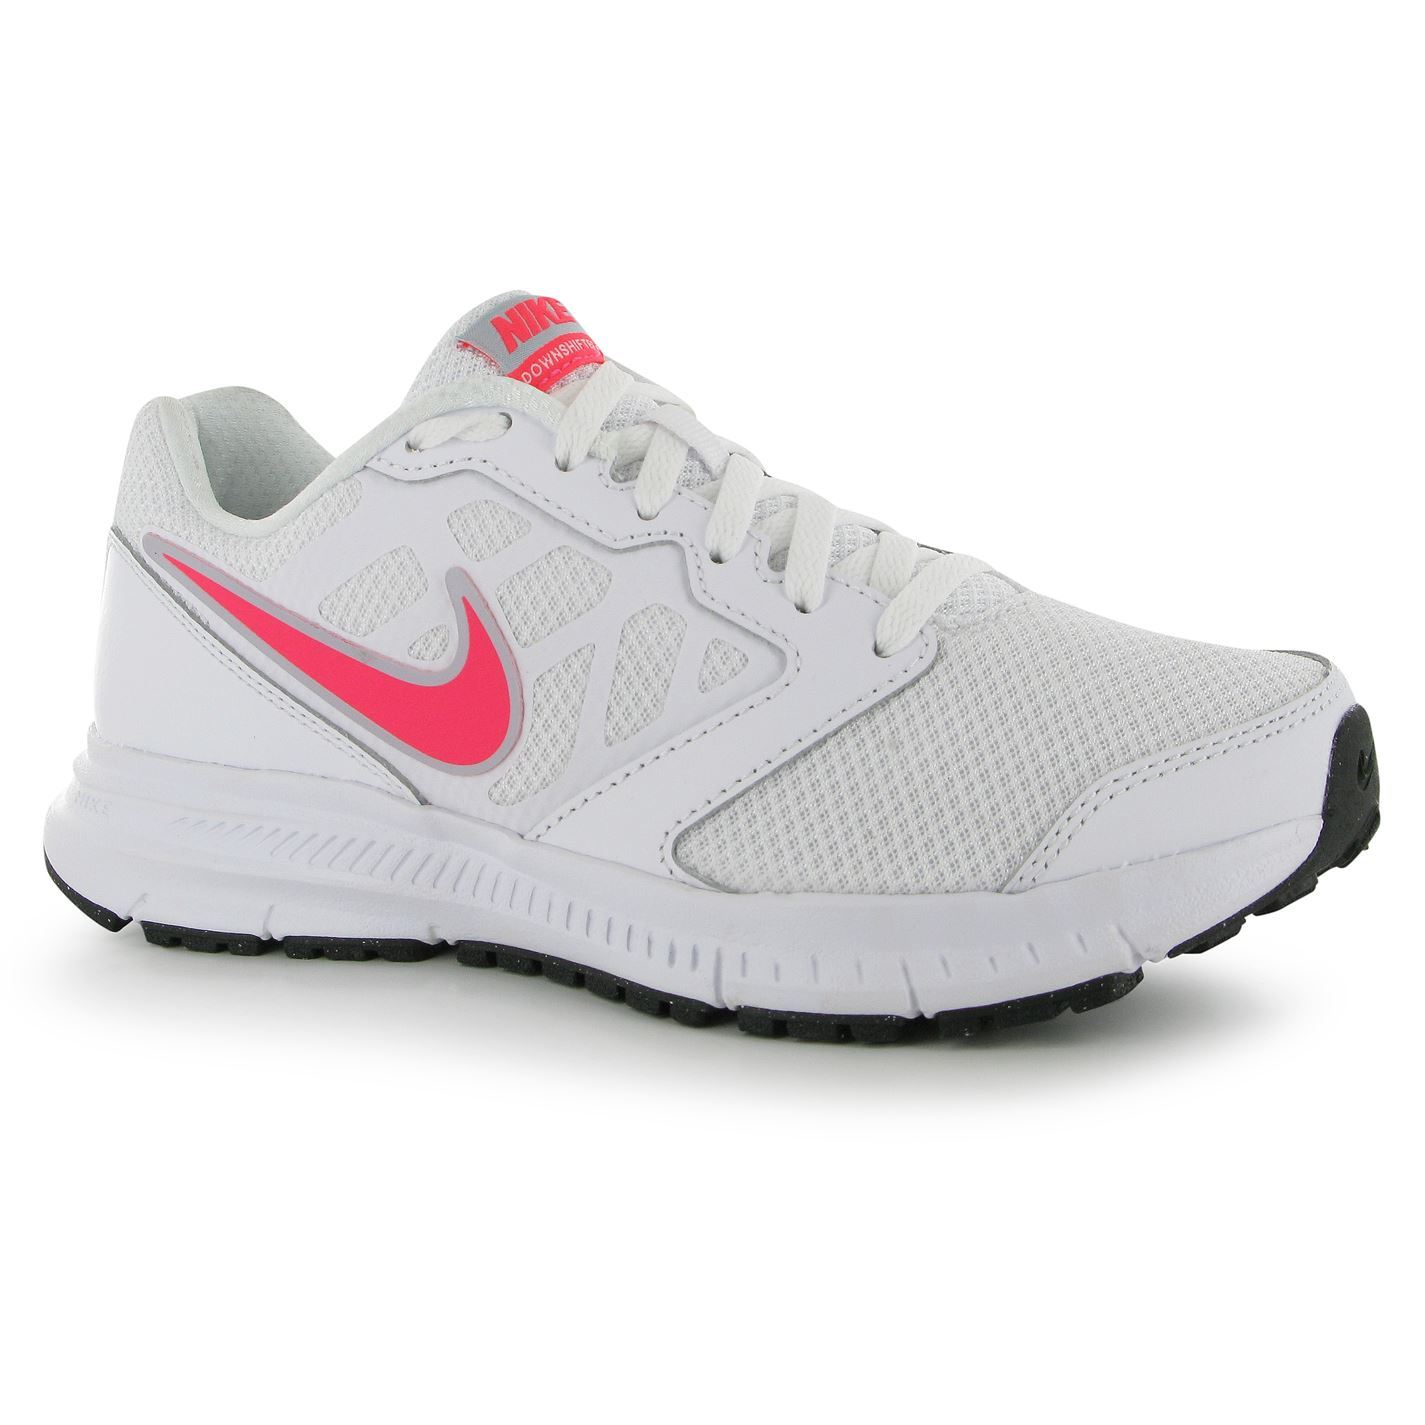 ... Nike Downshifter VI Running Shoes Trainers Womens White/Pink Jogging  Sneakers ...